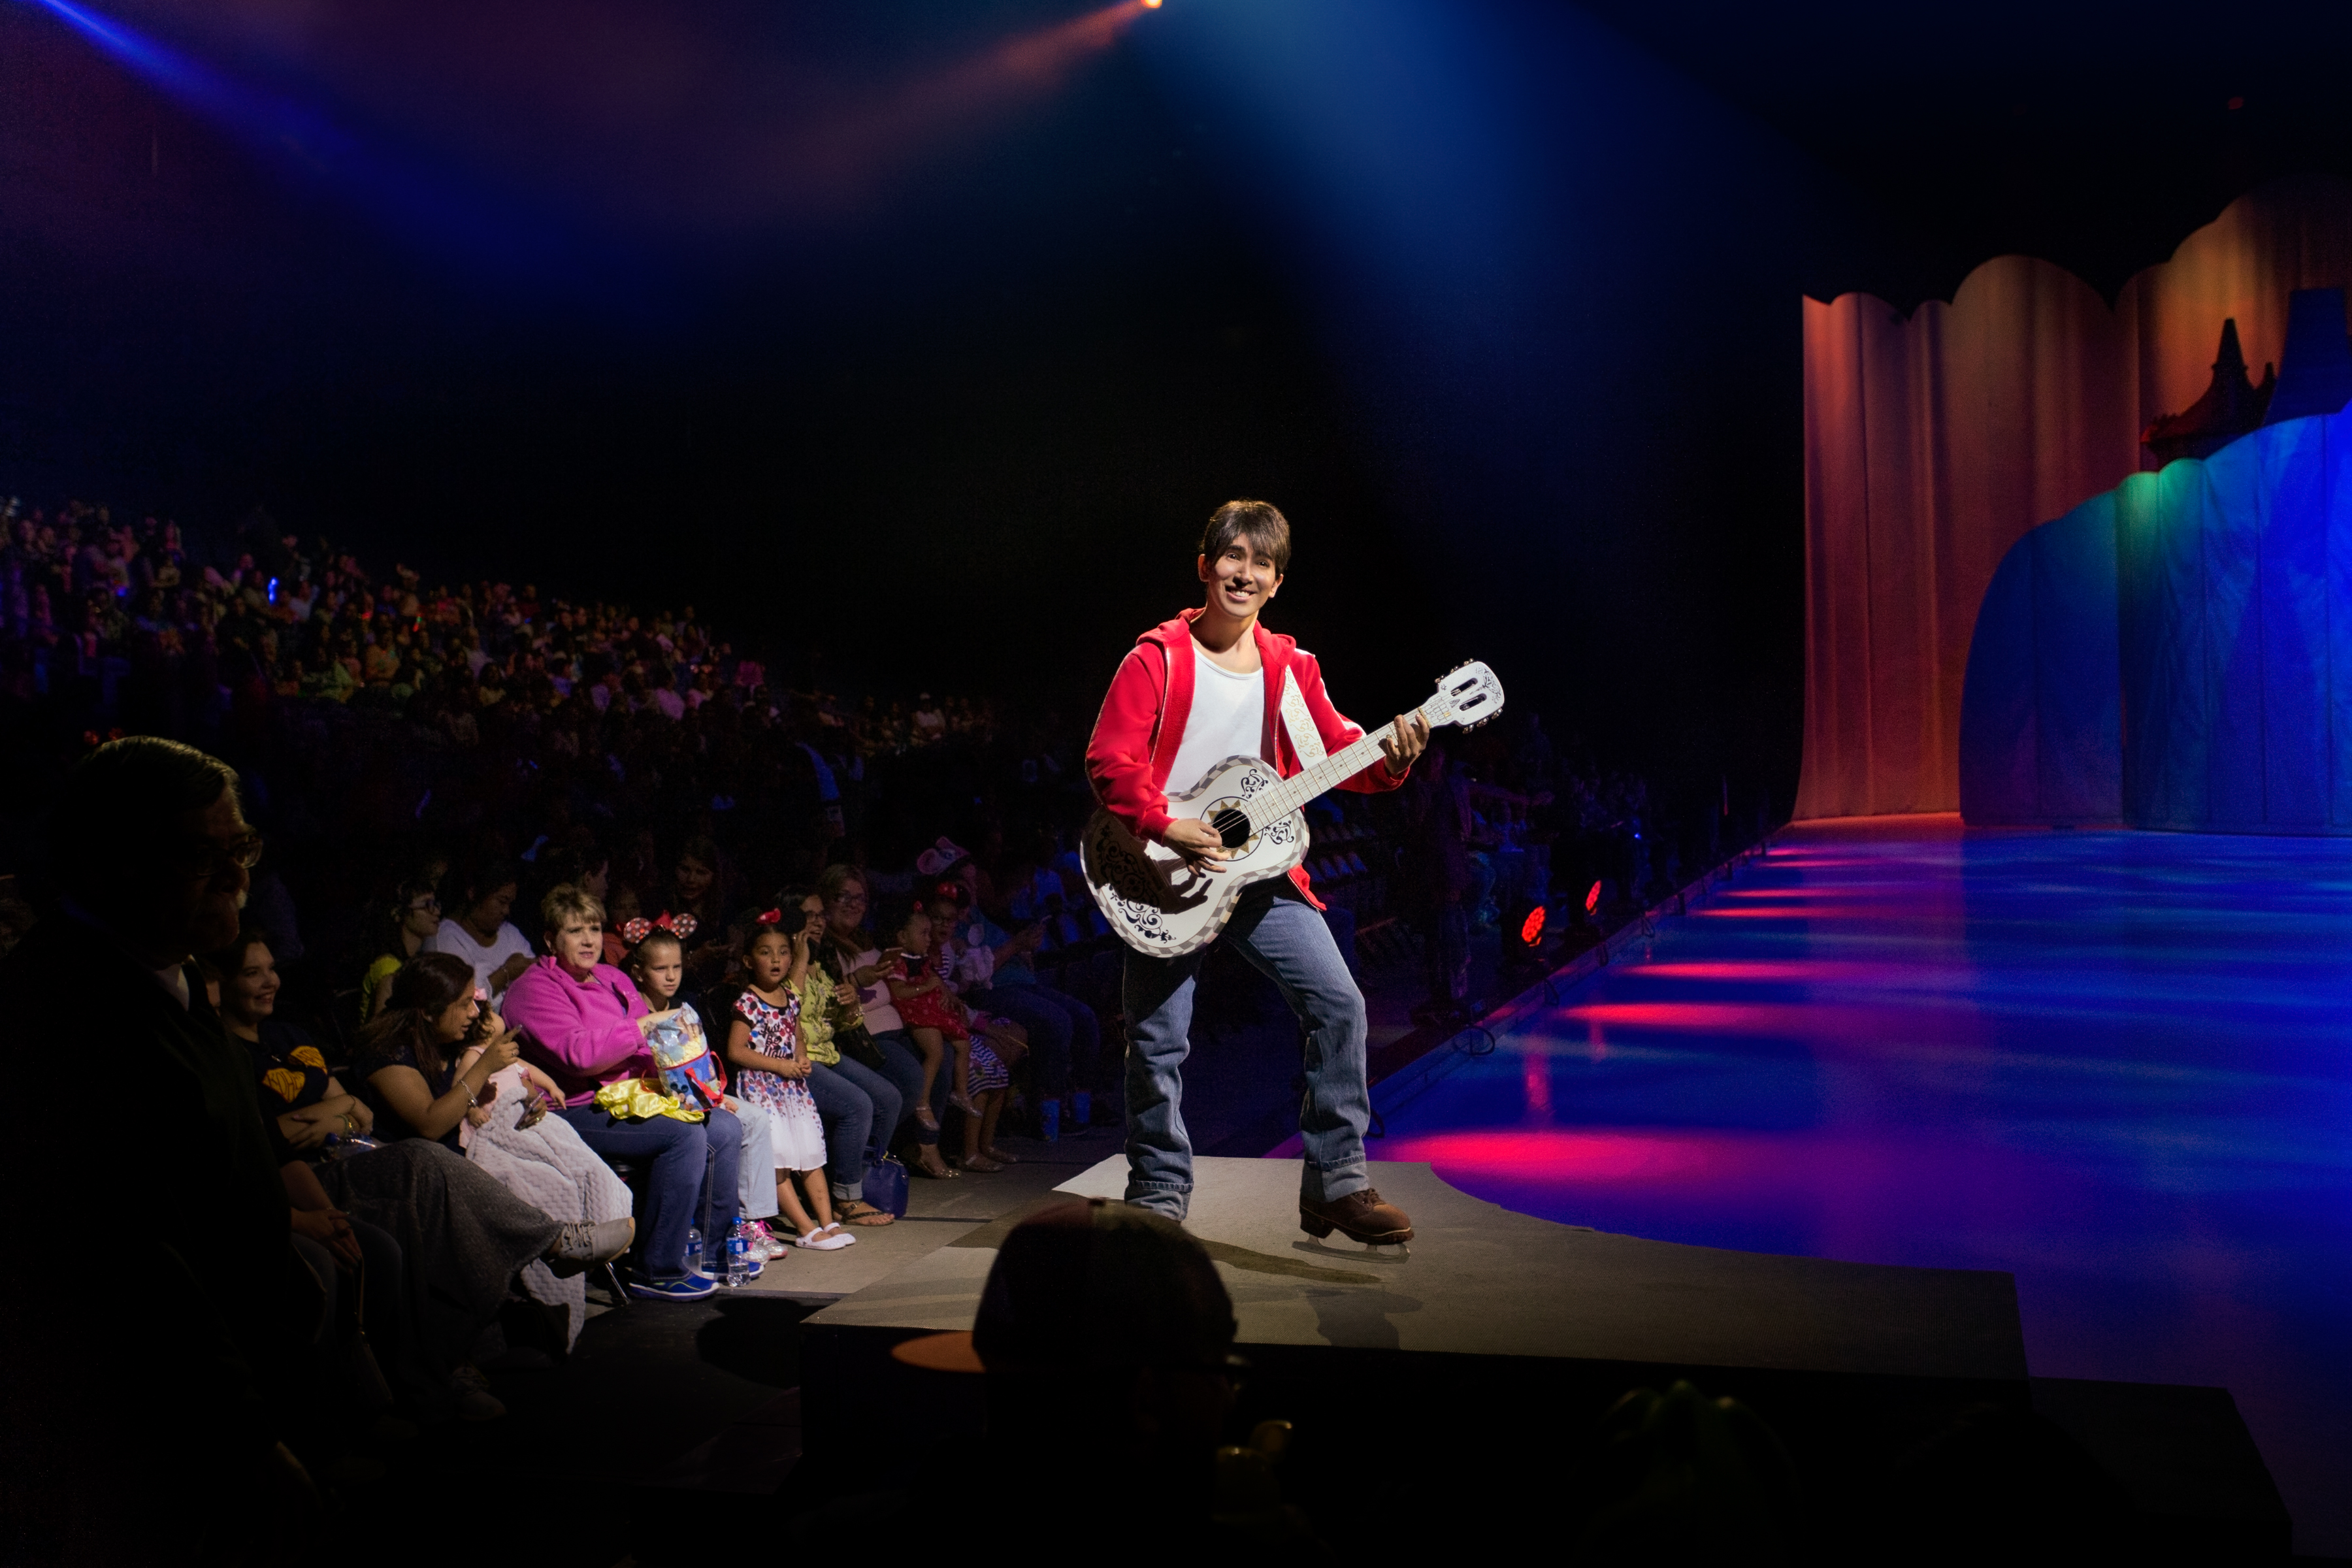 Disney's Miguel playing guitar on ice